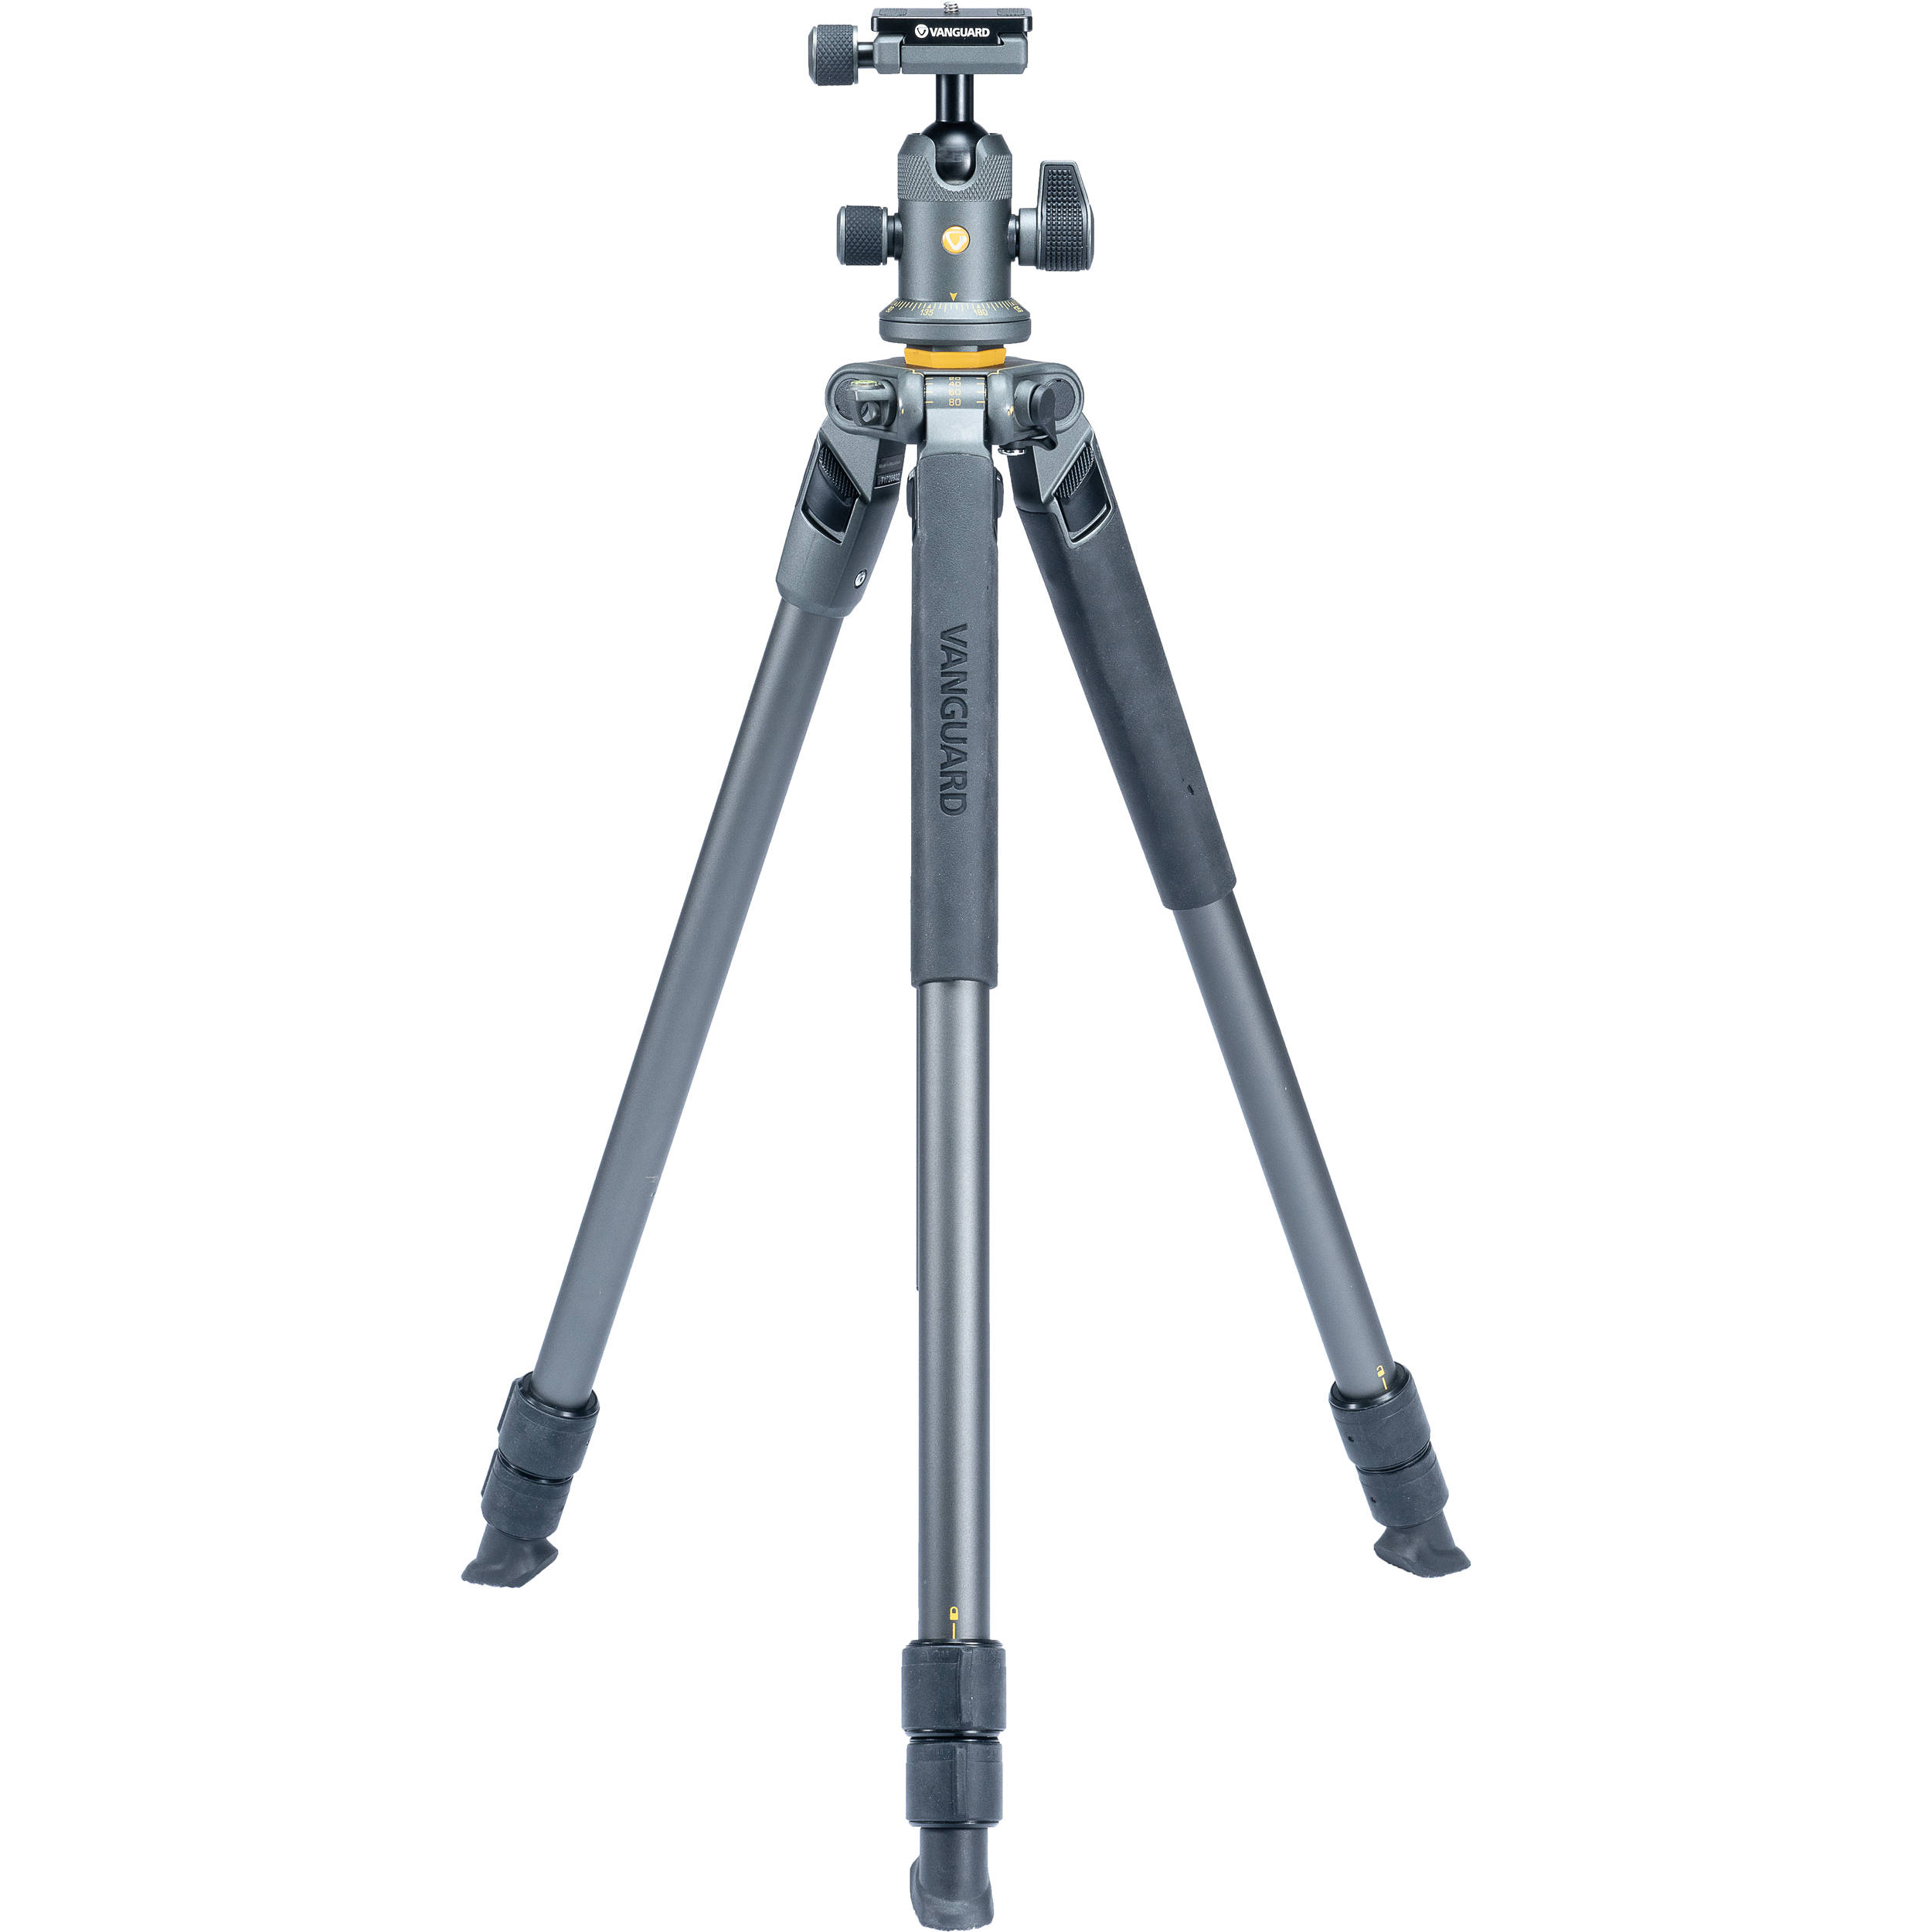 Vanguard Alta Pro 2 with ball head carbon tripod best gifts to buy a photographer